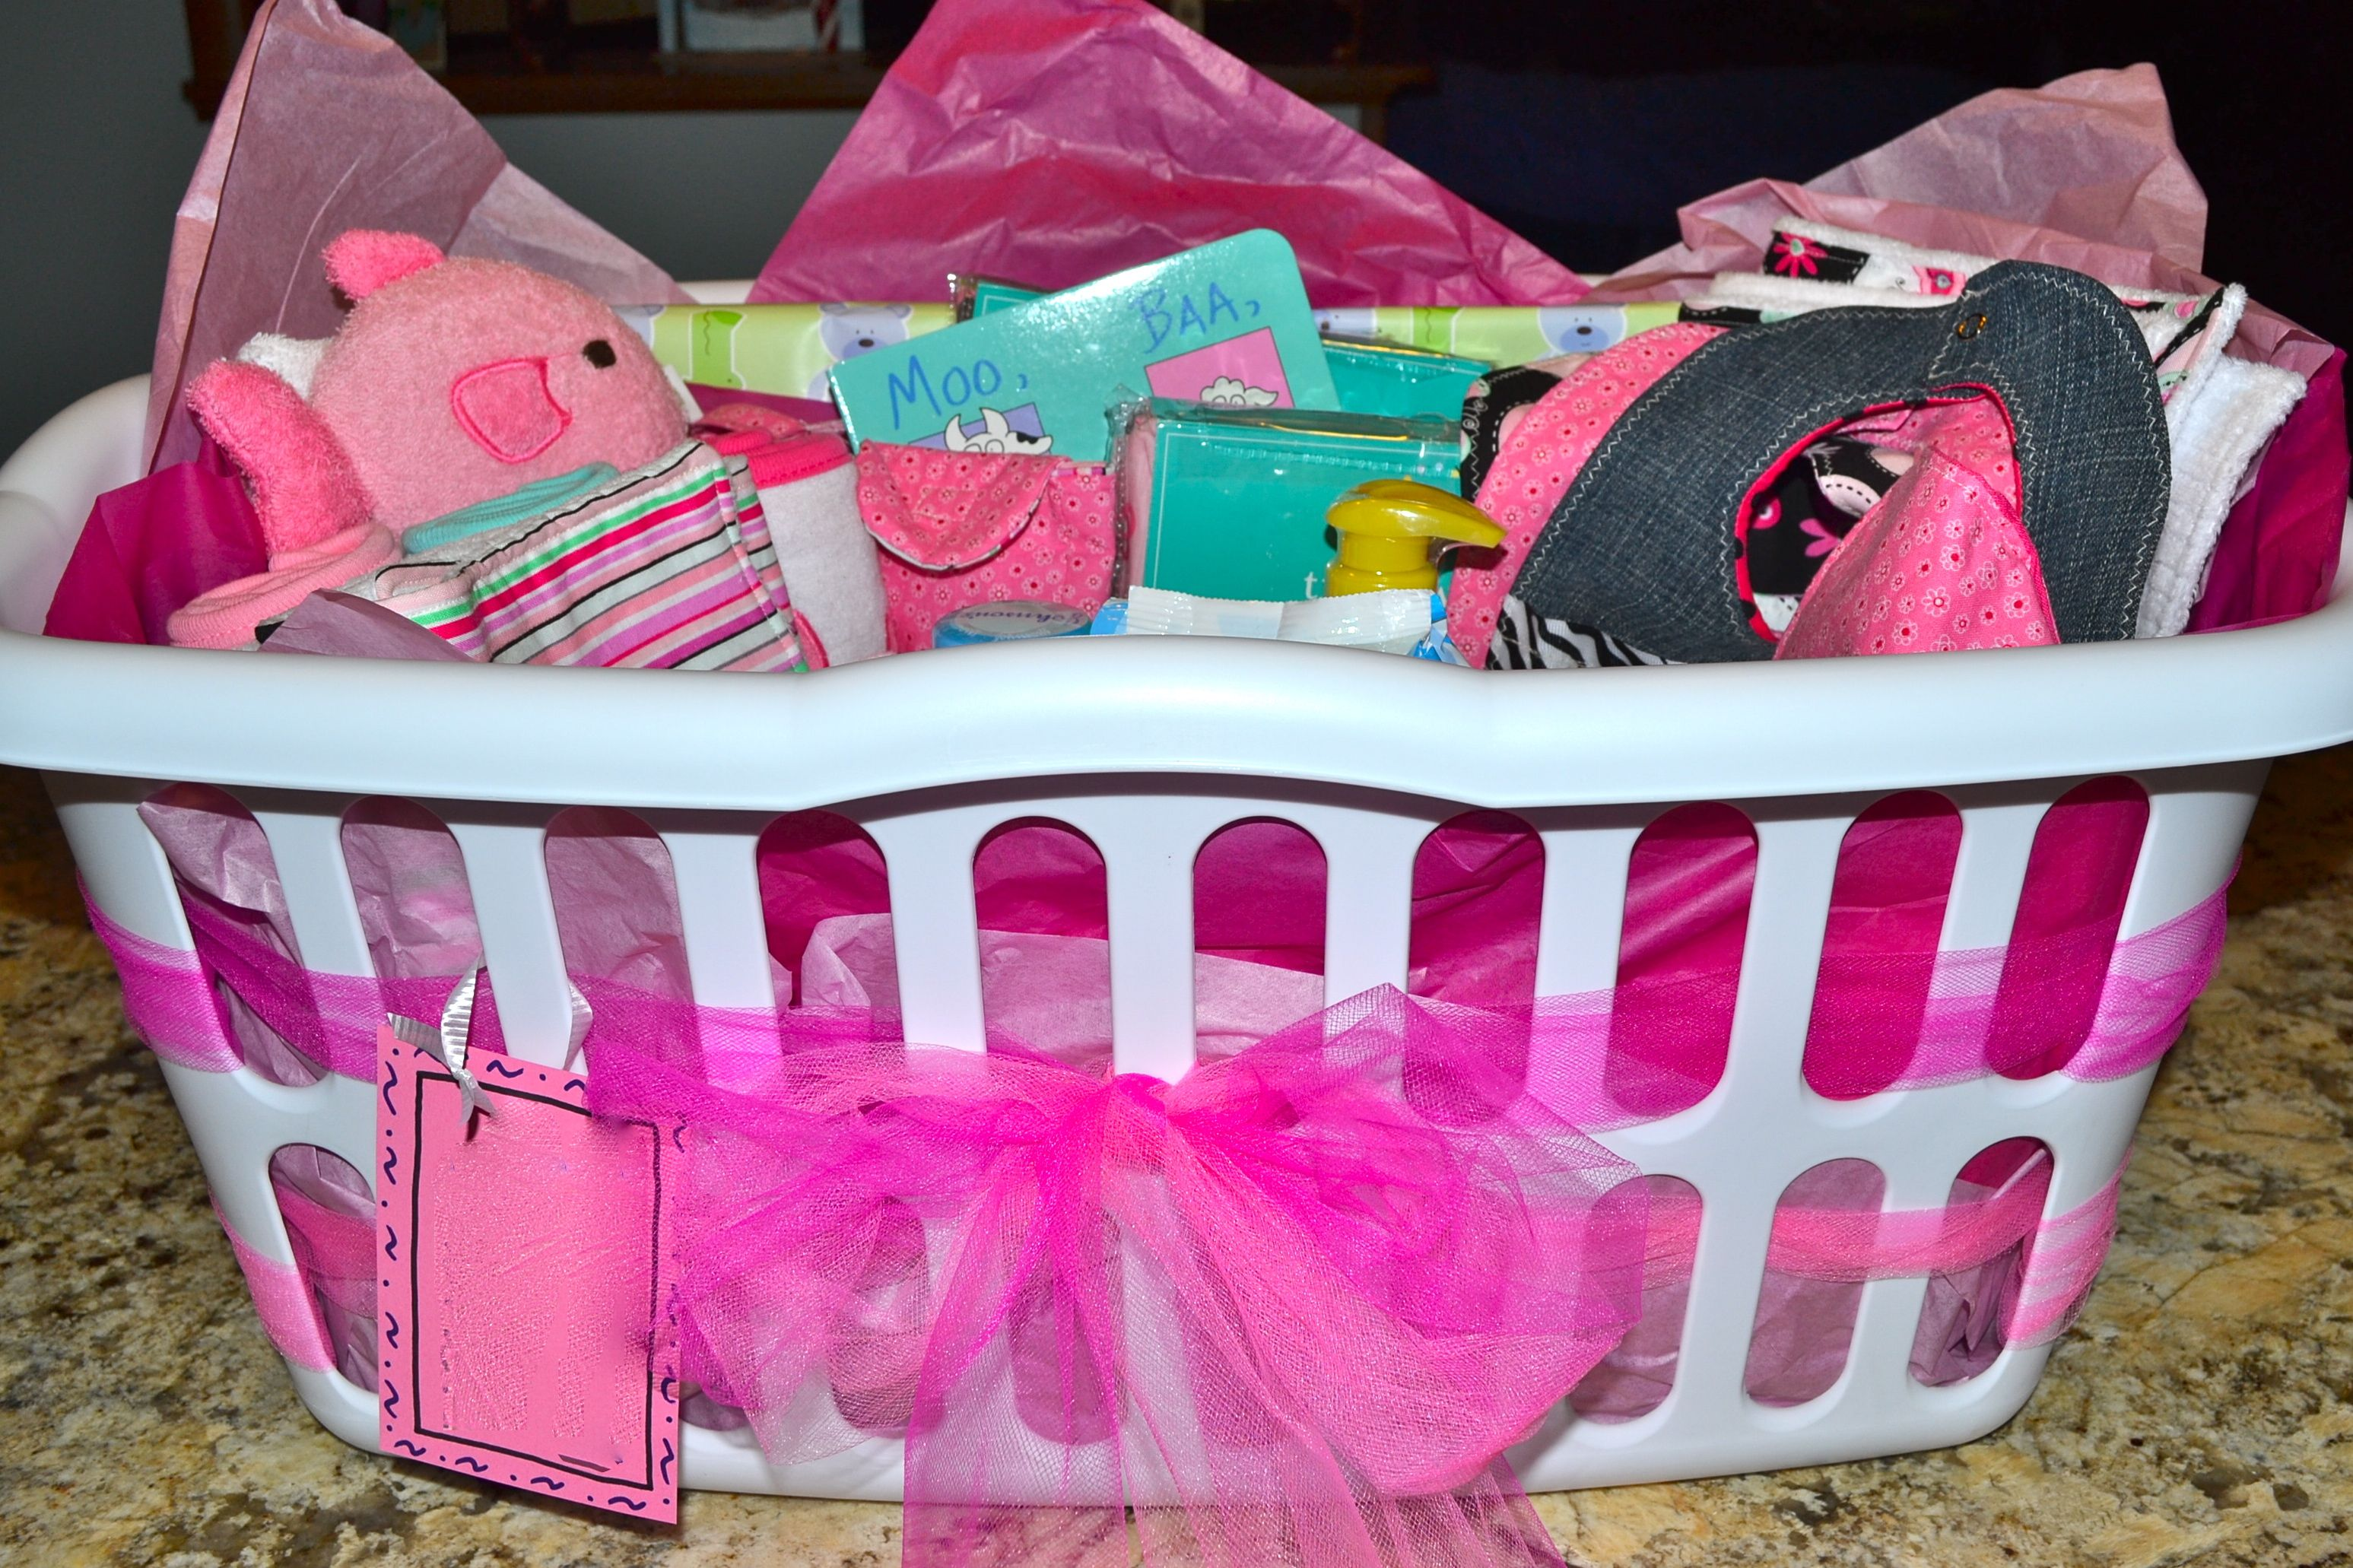 Baby Shower Gift Idea - fill a basket with goodies - diapers, wipes ...